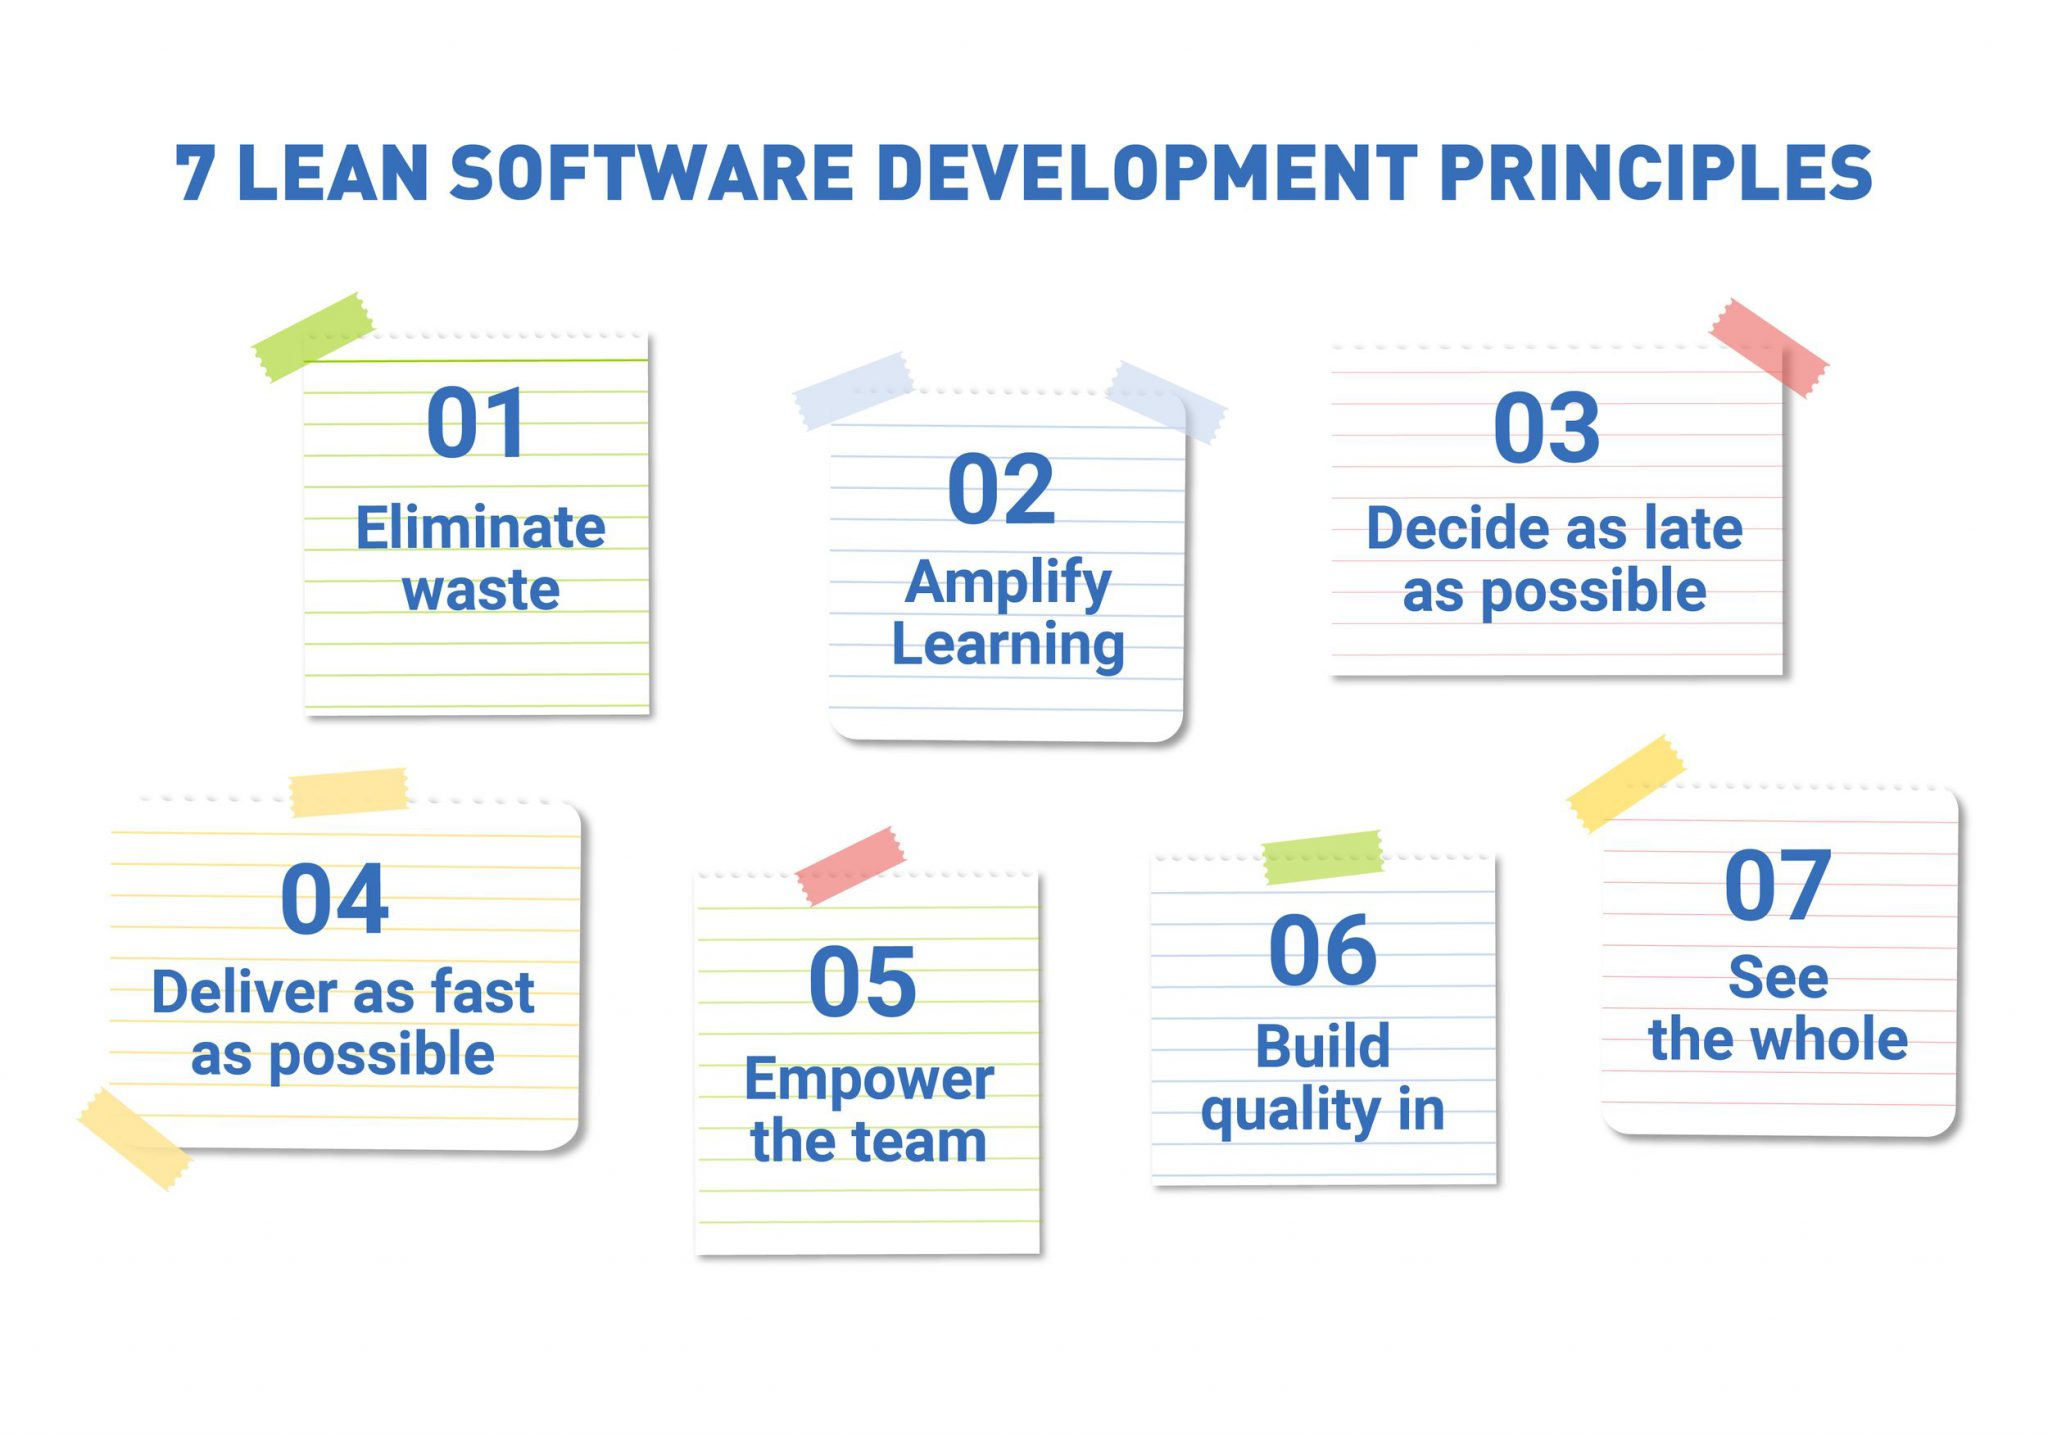 Berühmt Advantages of Lean Software Development | *instinctools @RV_85